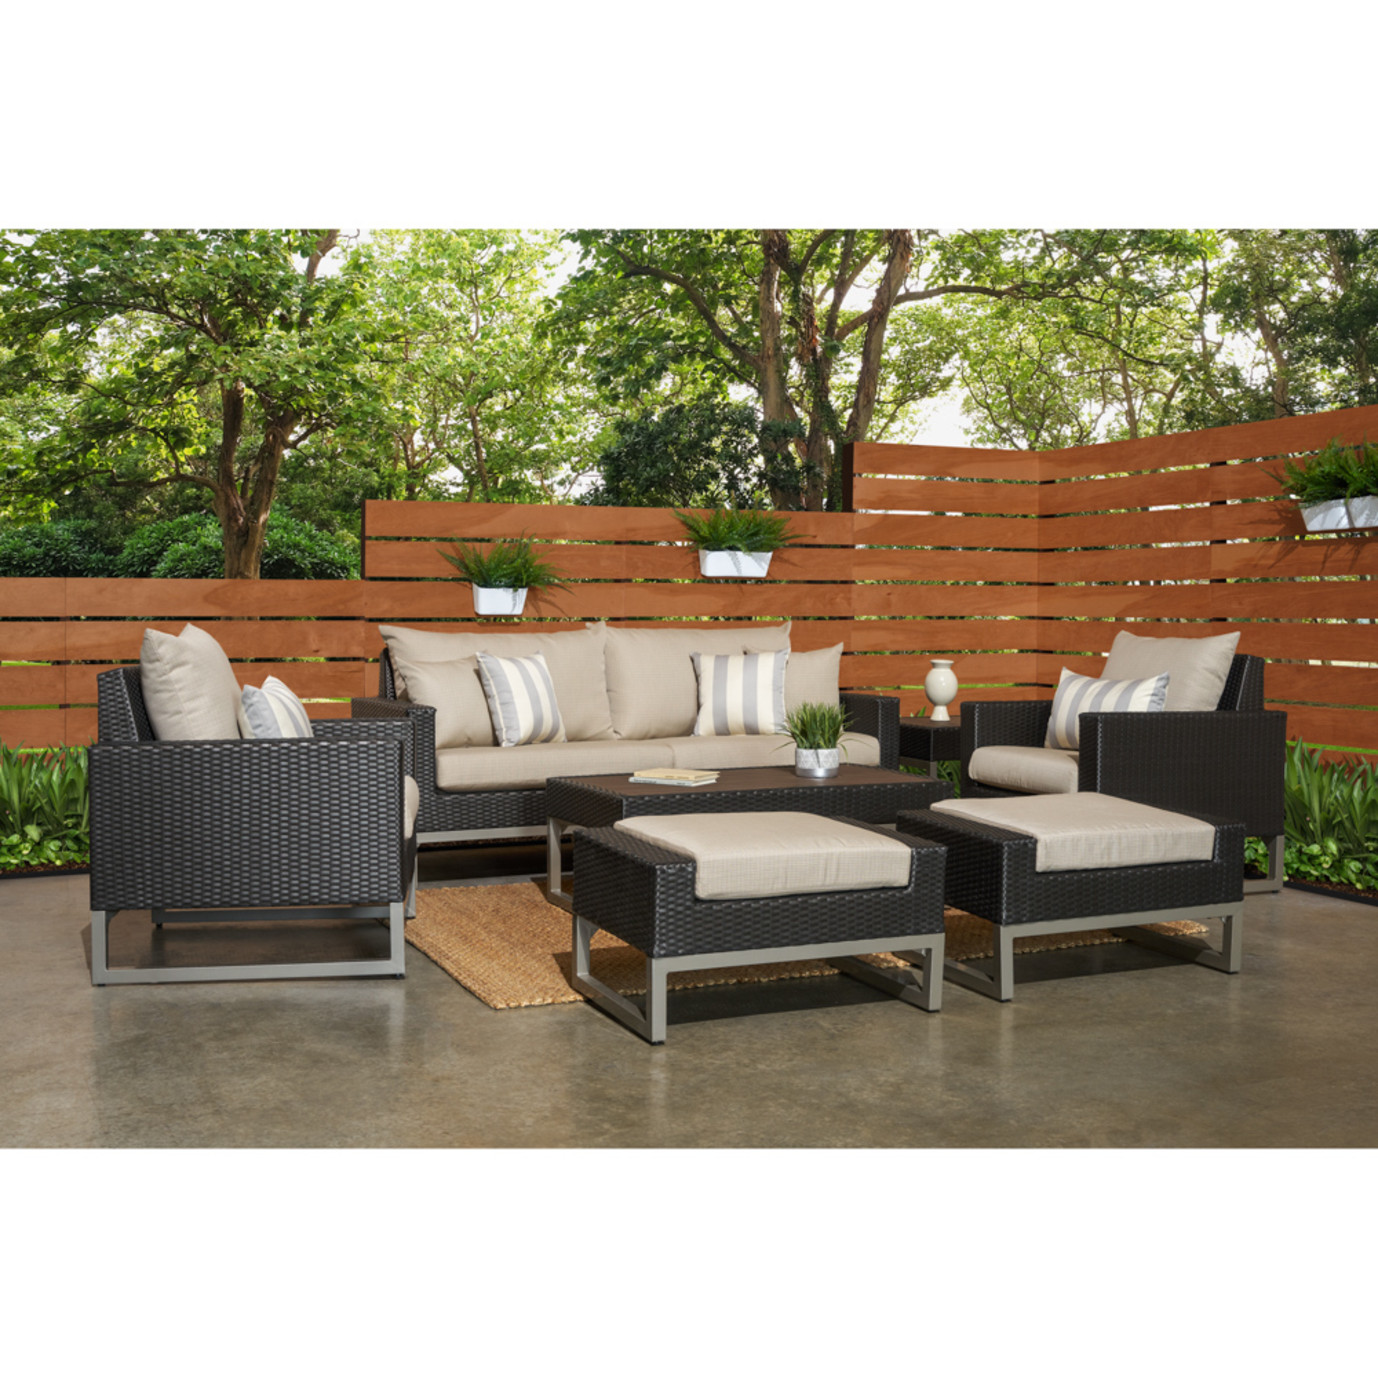 Milo™ Espresso 7 Piece Deep Seating Set -Slate Gray